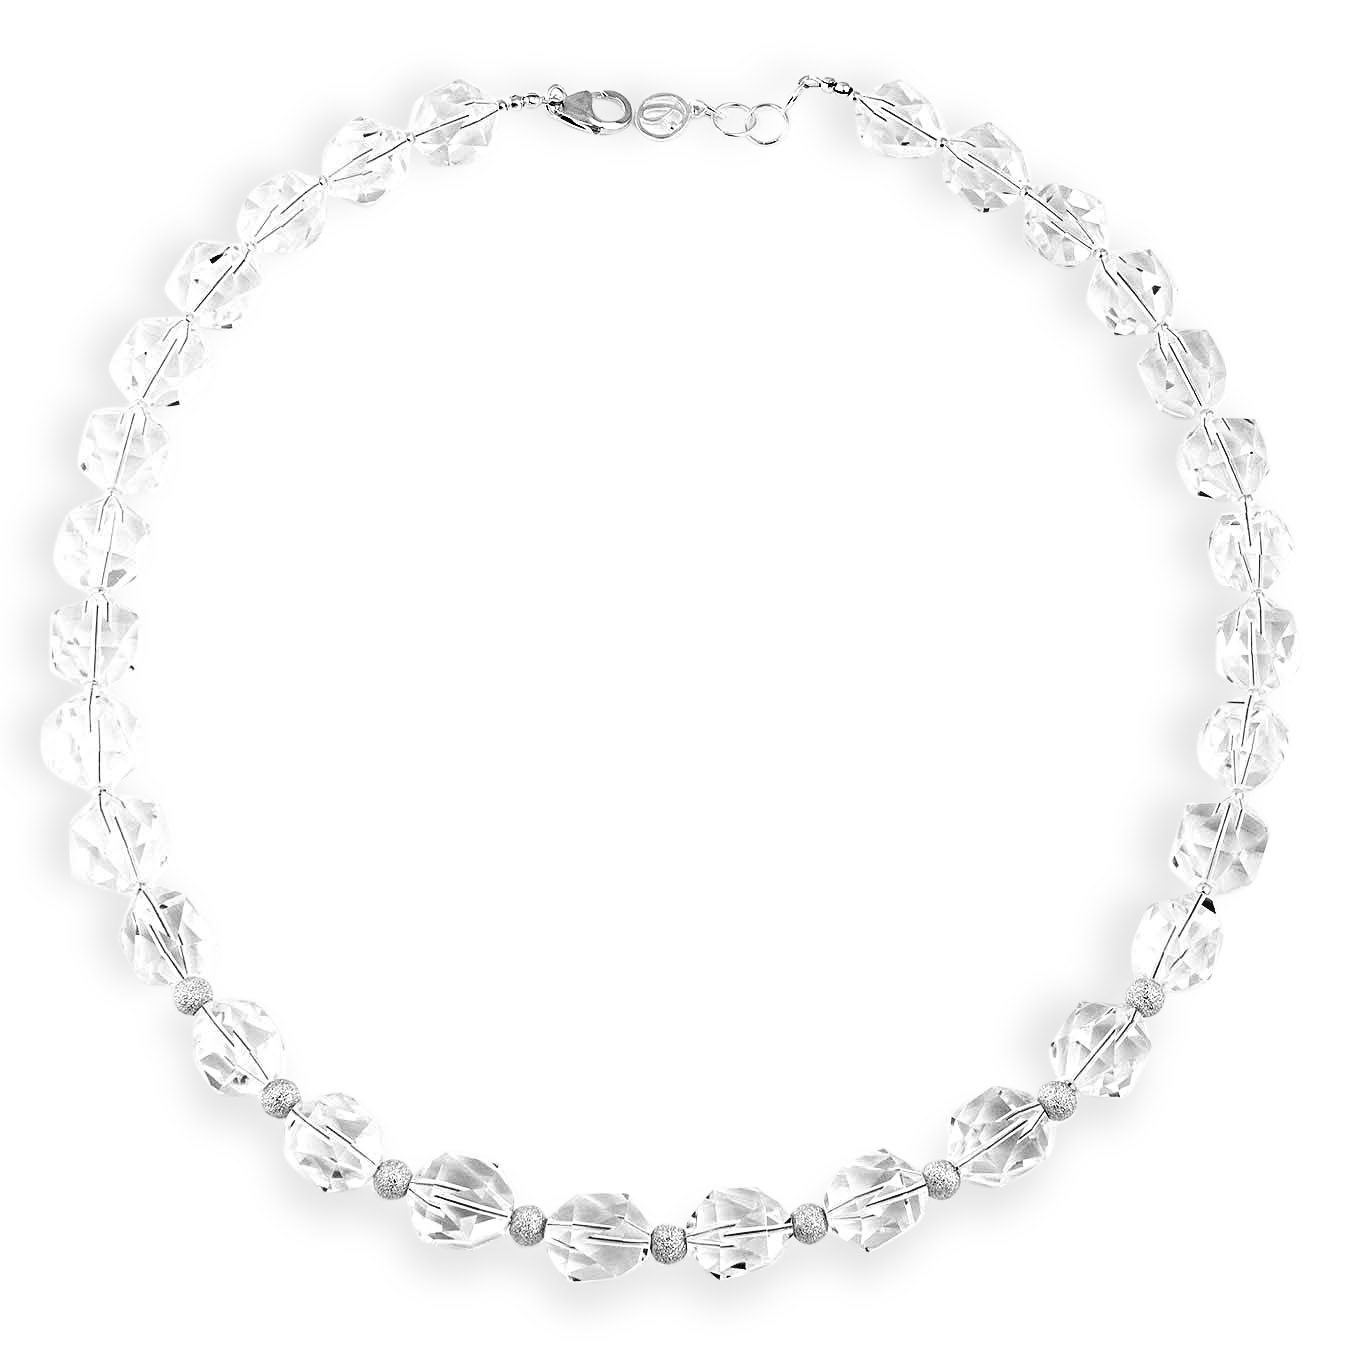 Handcrafted birthstone necklace made of rock crystal stones and silver